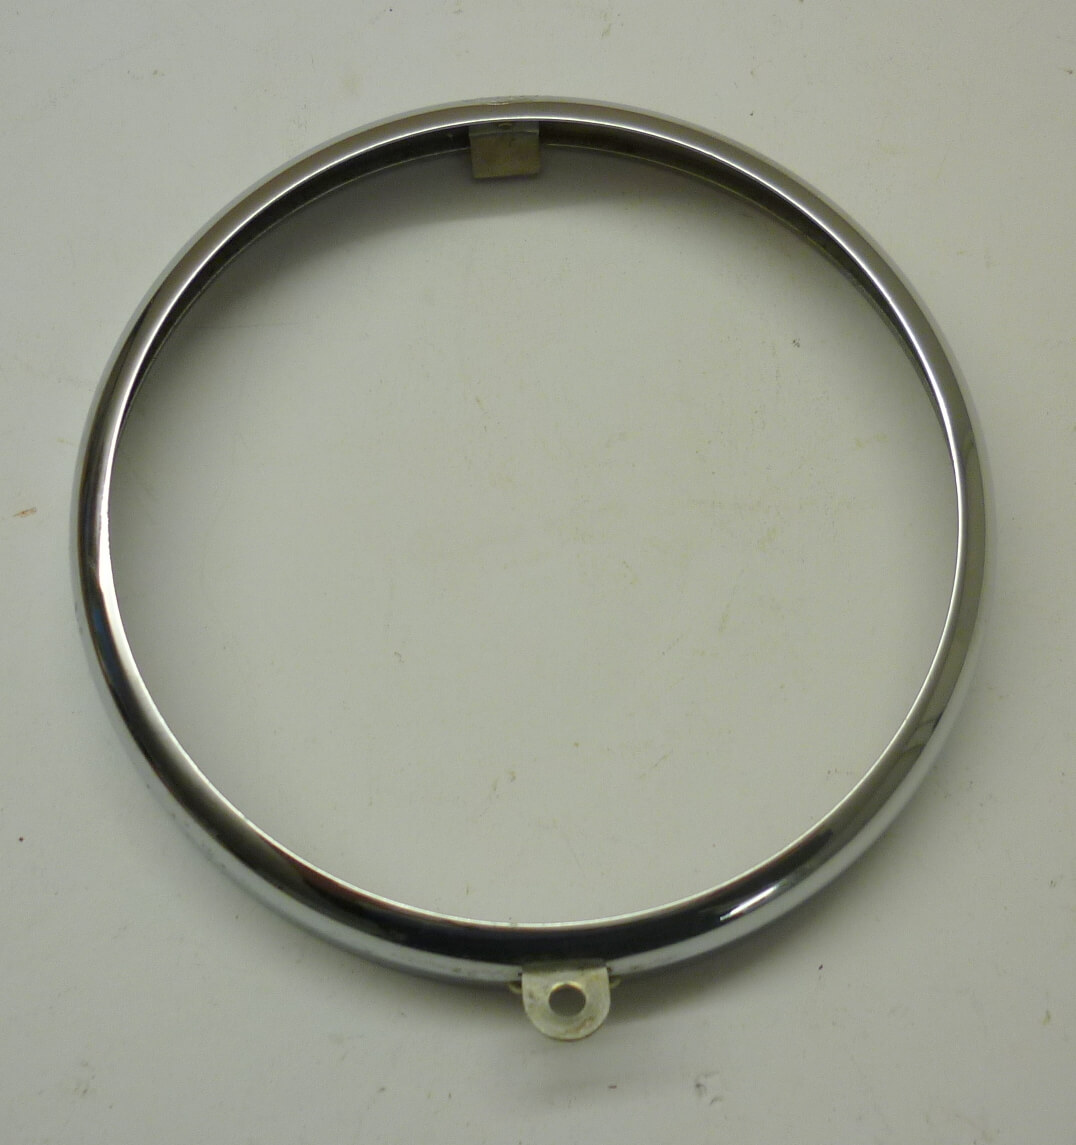 Rim for headlamp Hella, HELLA, Hoffmann Vespa, NOS